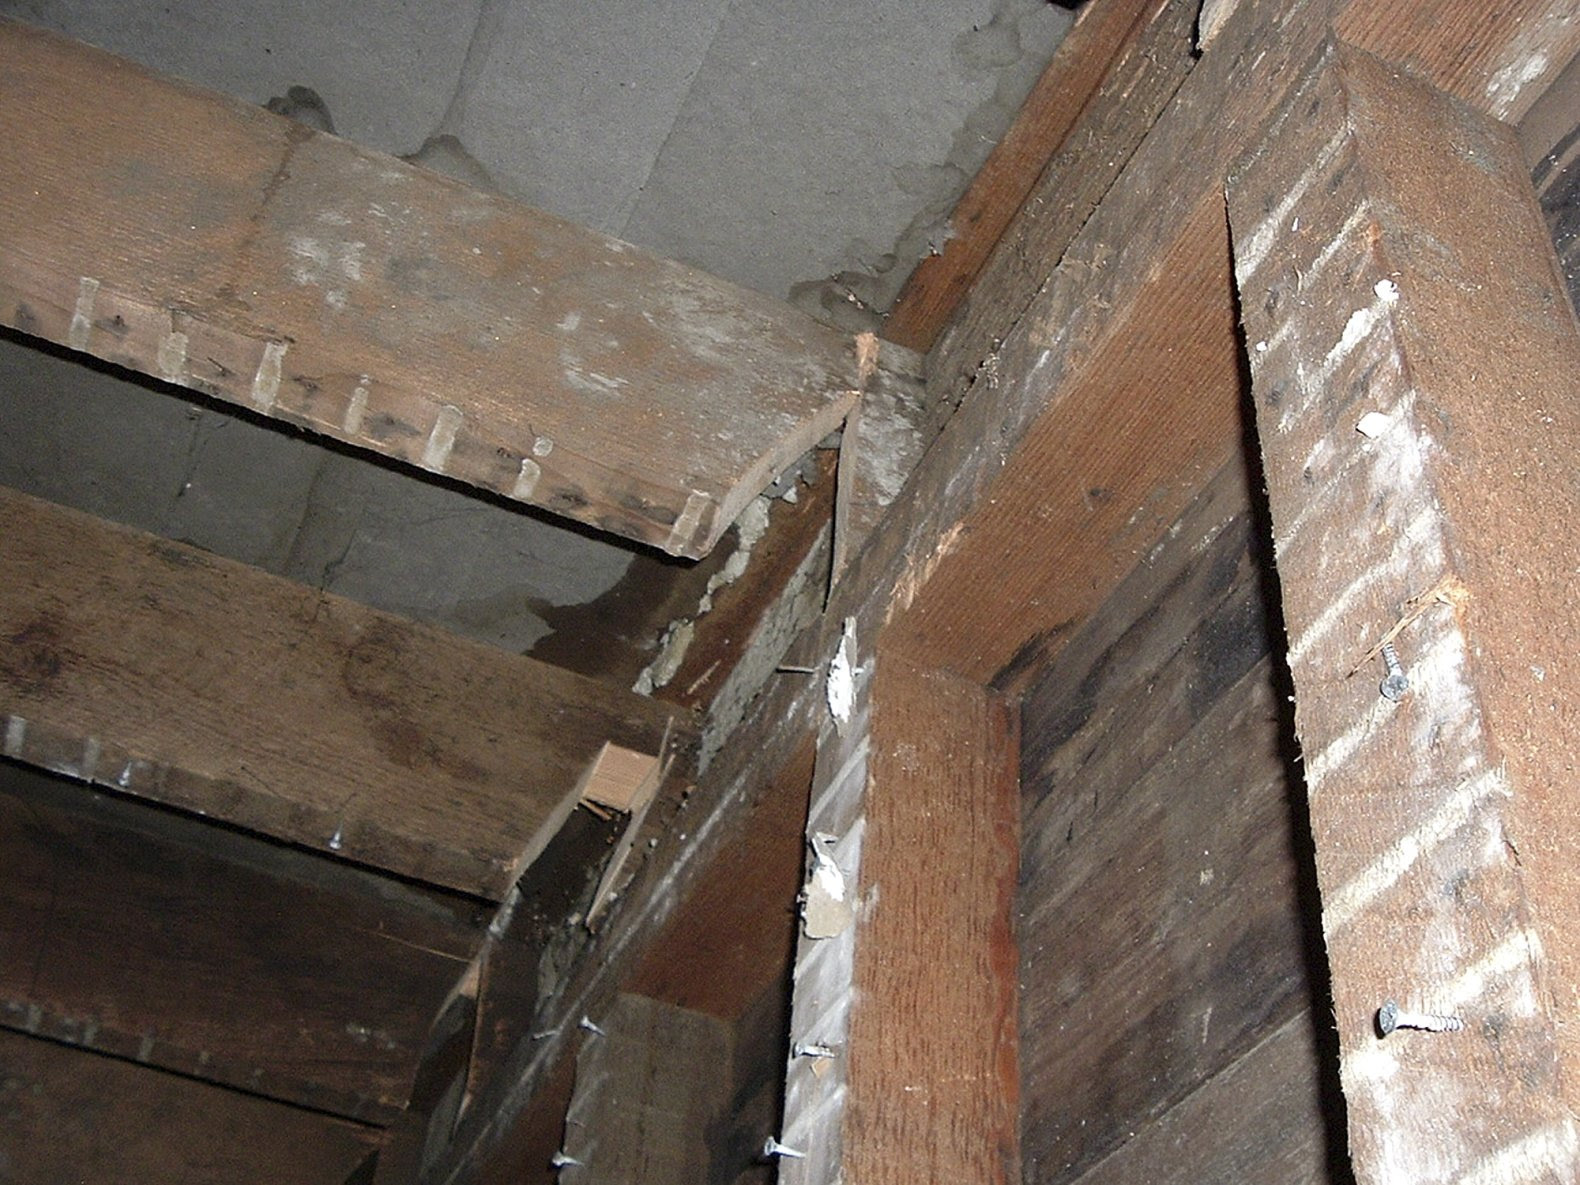 """This undated photo released by the San Francisco Office of the District Attorney shows cut joists under the floor of a San Francisco apartment. A couple prosecutors dubbed the """"landlords from hell"""" for going to scary lengths to drive tenants from a San Francisco apartment building has pleaded guilty to several felonies. Prosecutors said Wednesday that 37-year-old Nicole Macy and 38-year-old Kip Macy threatened to shoot tenants, changed locks, cleared apartments of belongings, and sawed holes in floors, all in an attempt to drive renters out of their building in the increasingly pricey South of Market neighborhood. (AP Photo/San Francisco Office of the District Attorney)"""